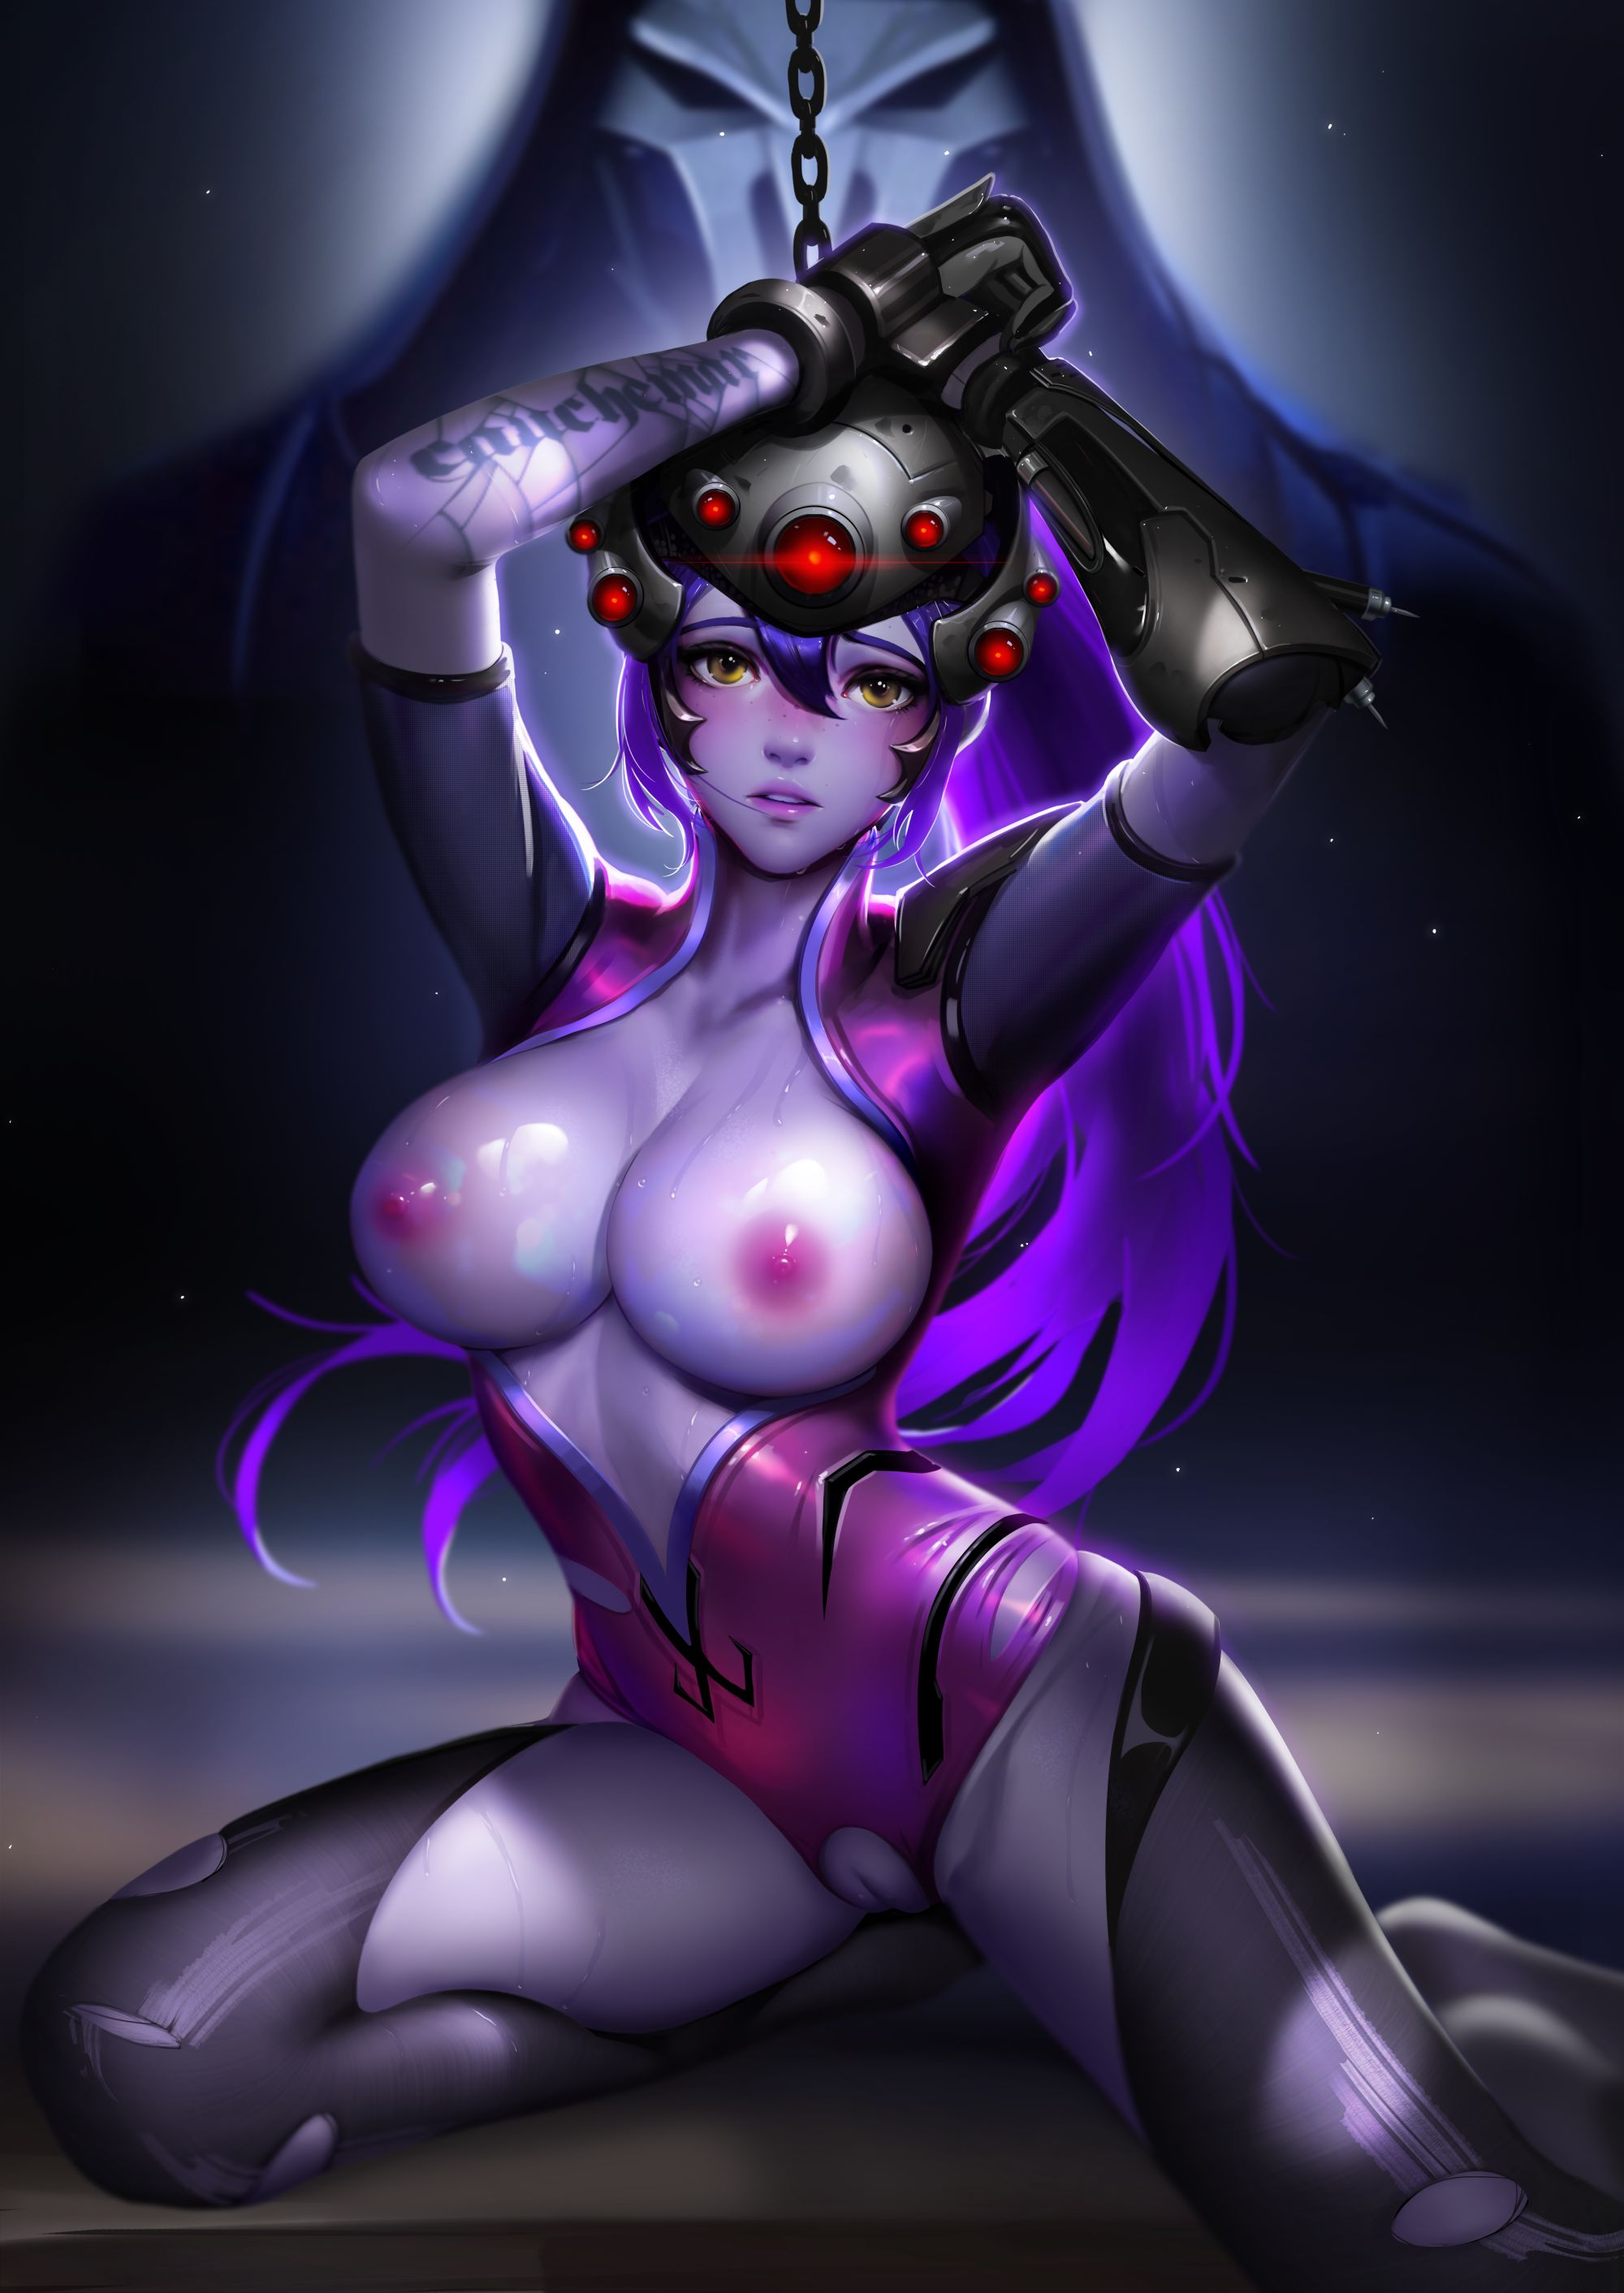 Thirty Hentai Drawings Of Widowmaker From Overwatch